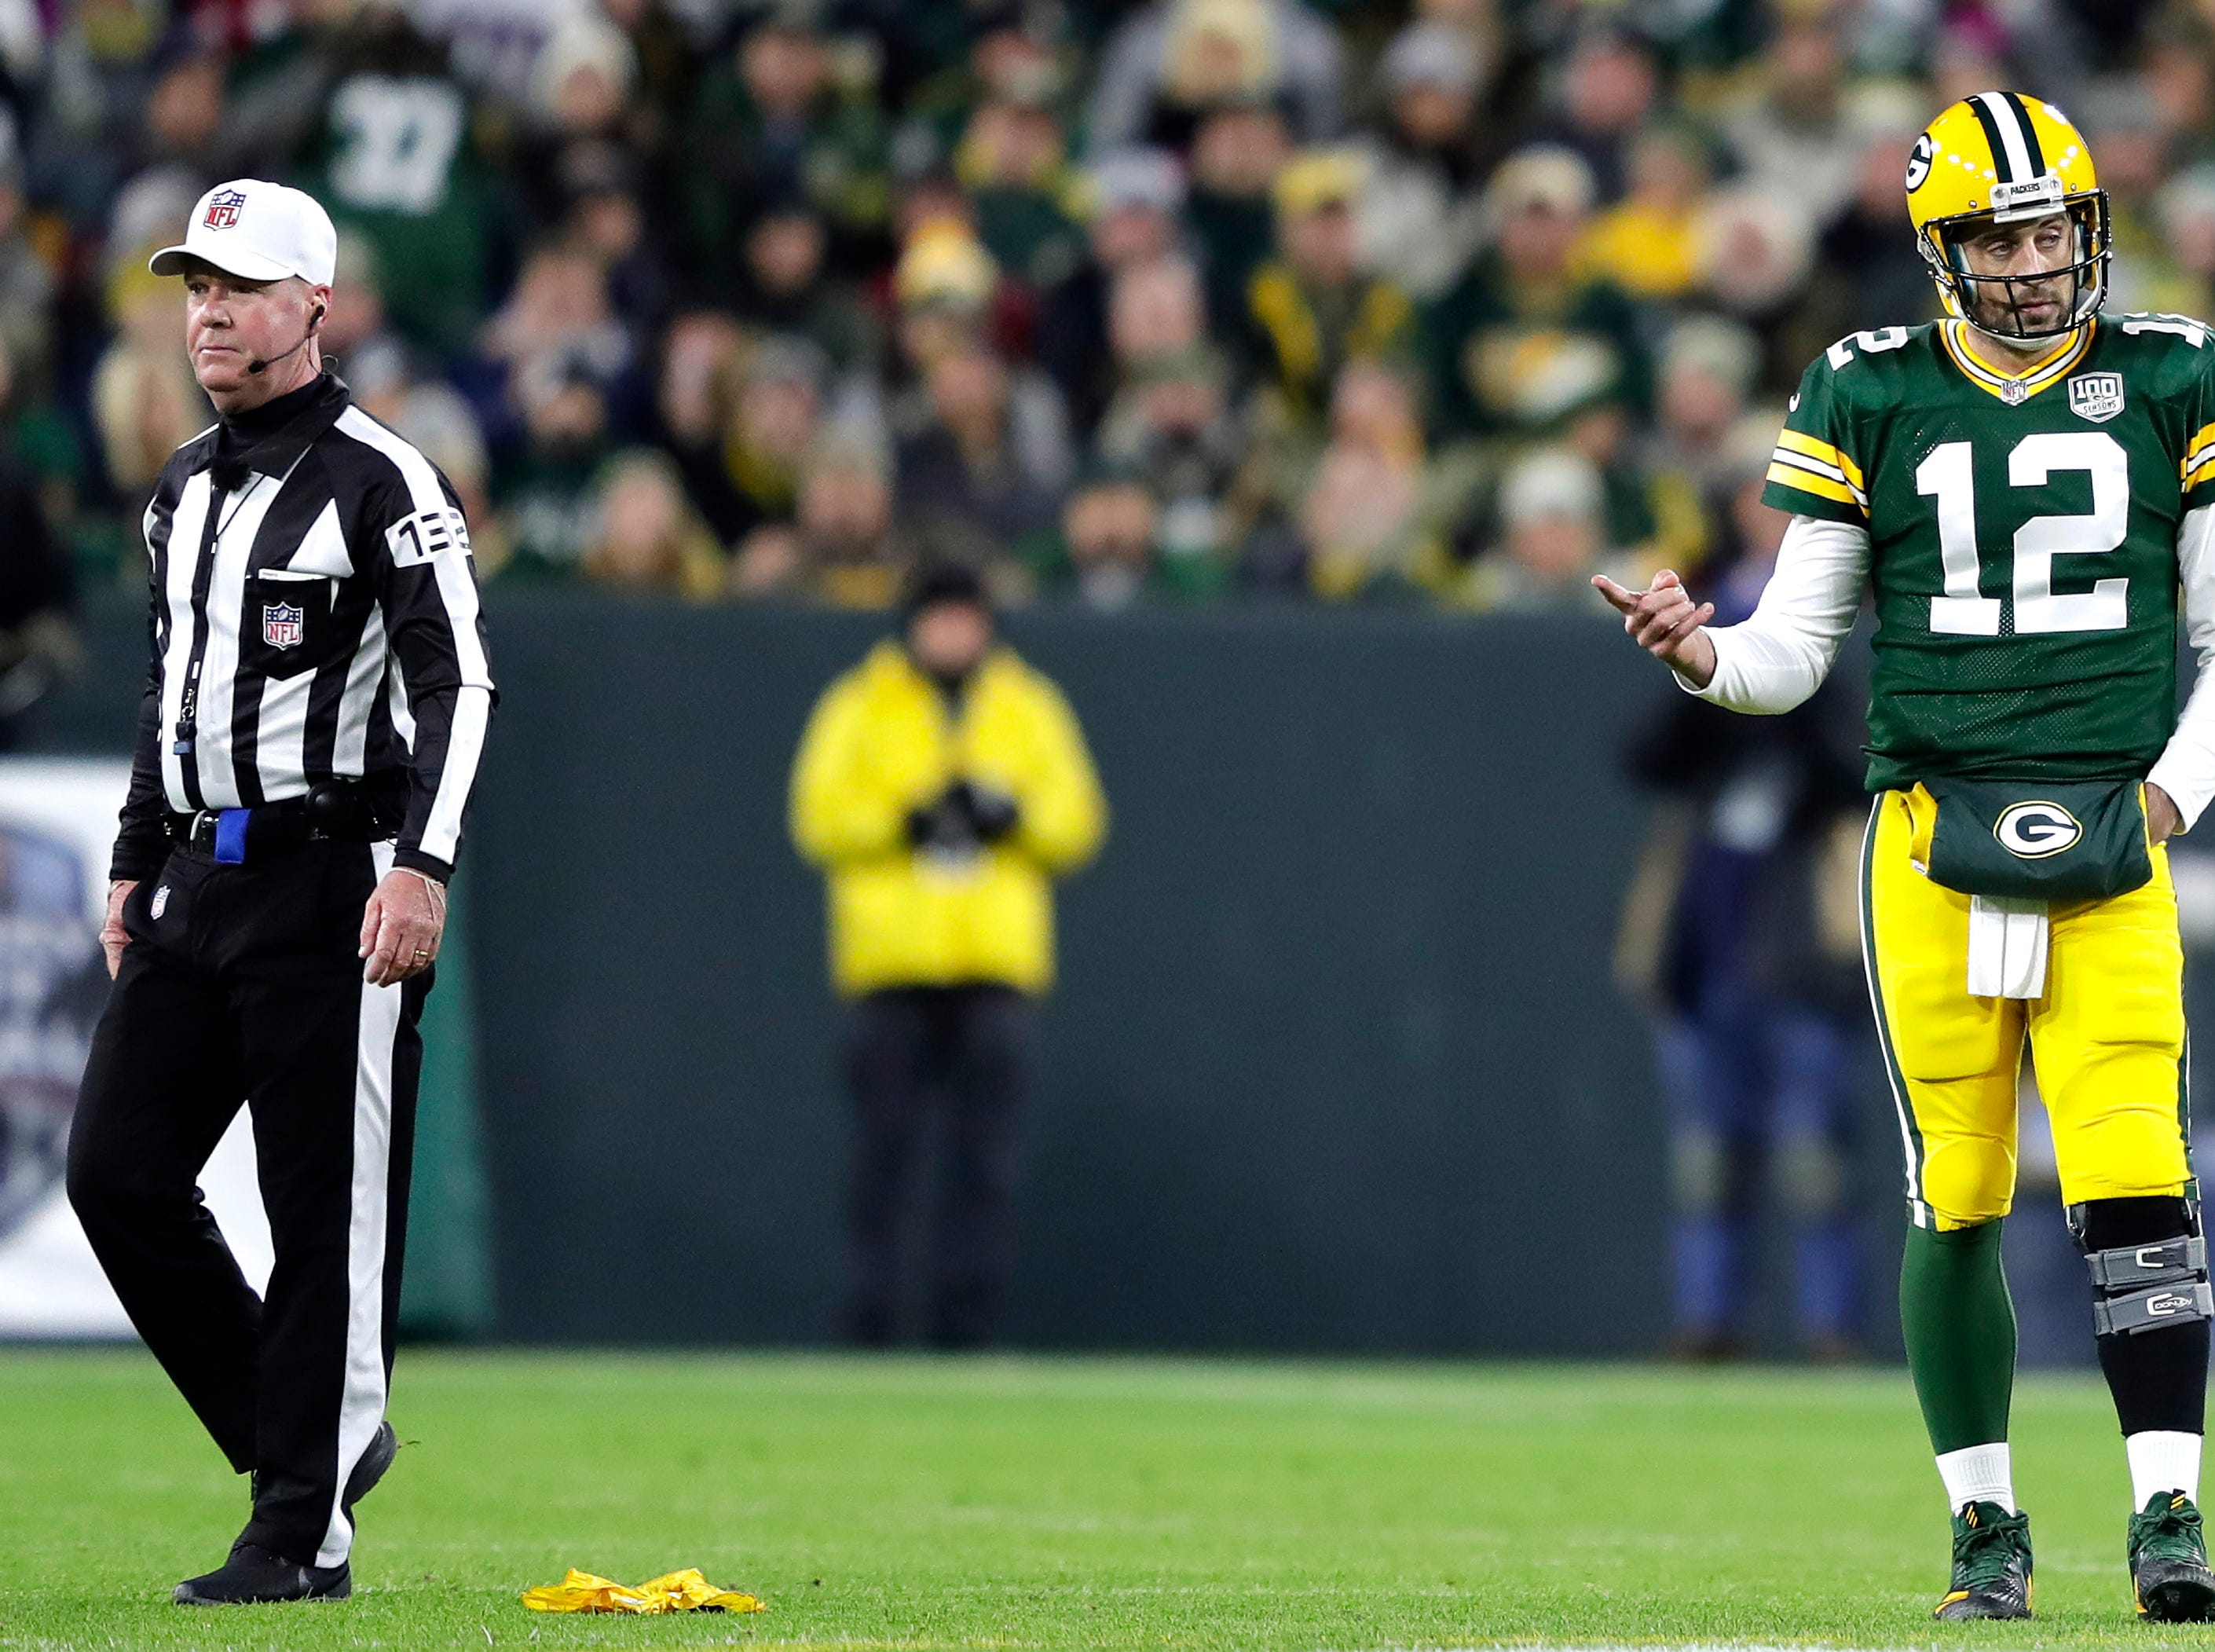 Green Bay Packers quarterback Aaron Rodgers argues a grounding call in the second quarter against the San Francisco 49ers on Monday, October 15, 2018, at Lambeau Field in Green Bay, Wis. 